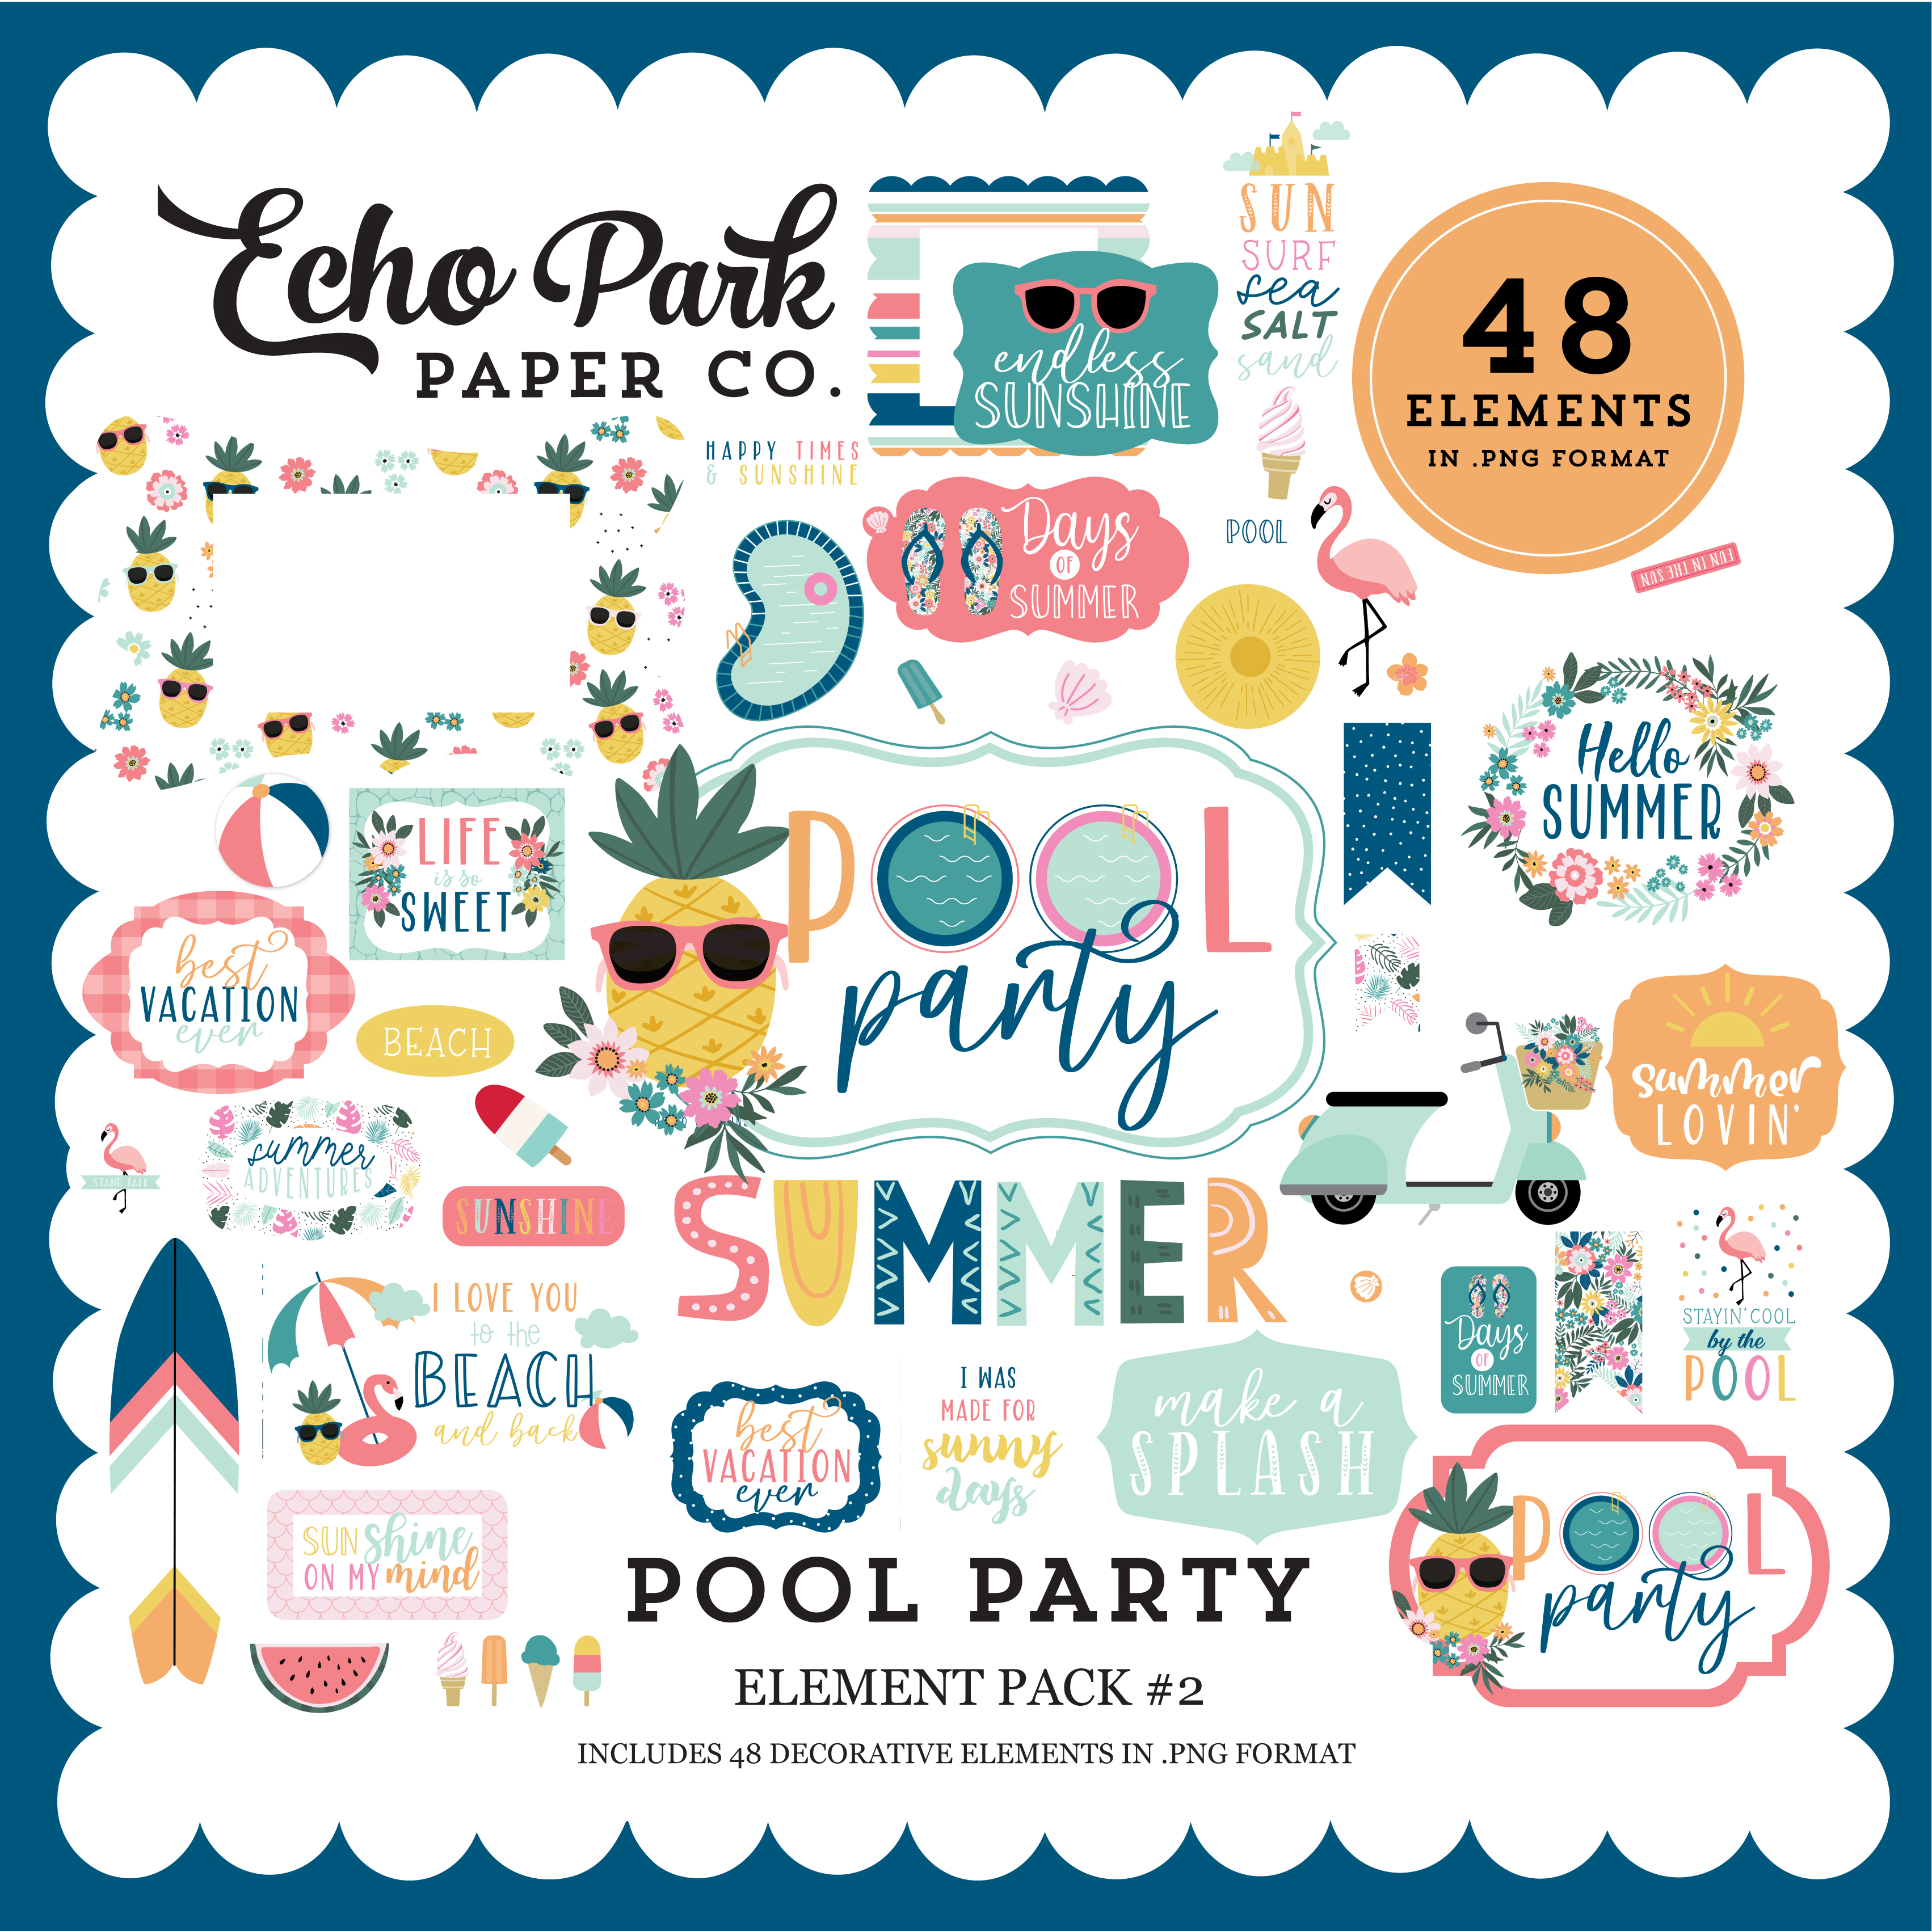 Pool Party Element Pack #2